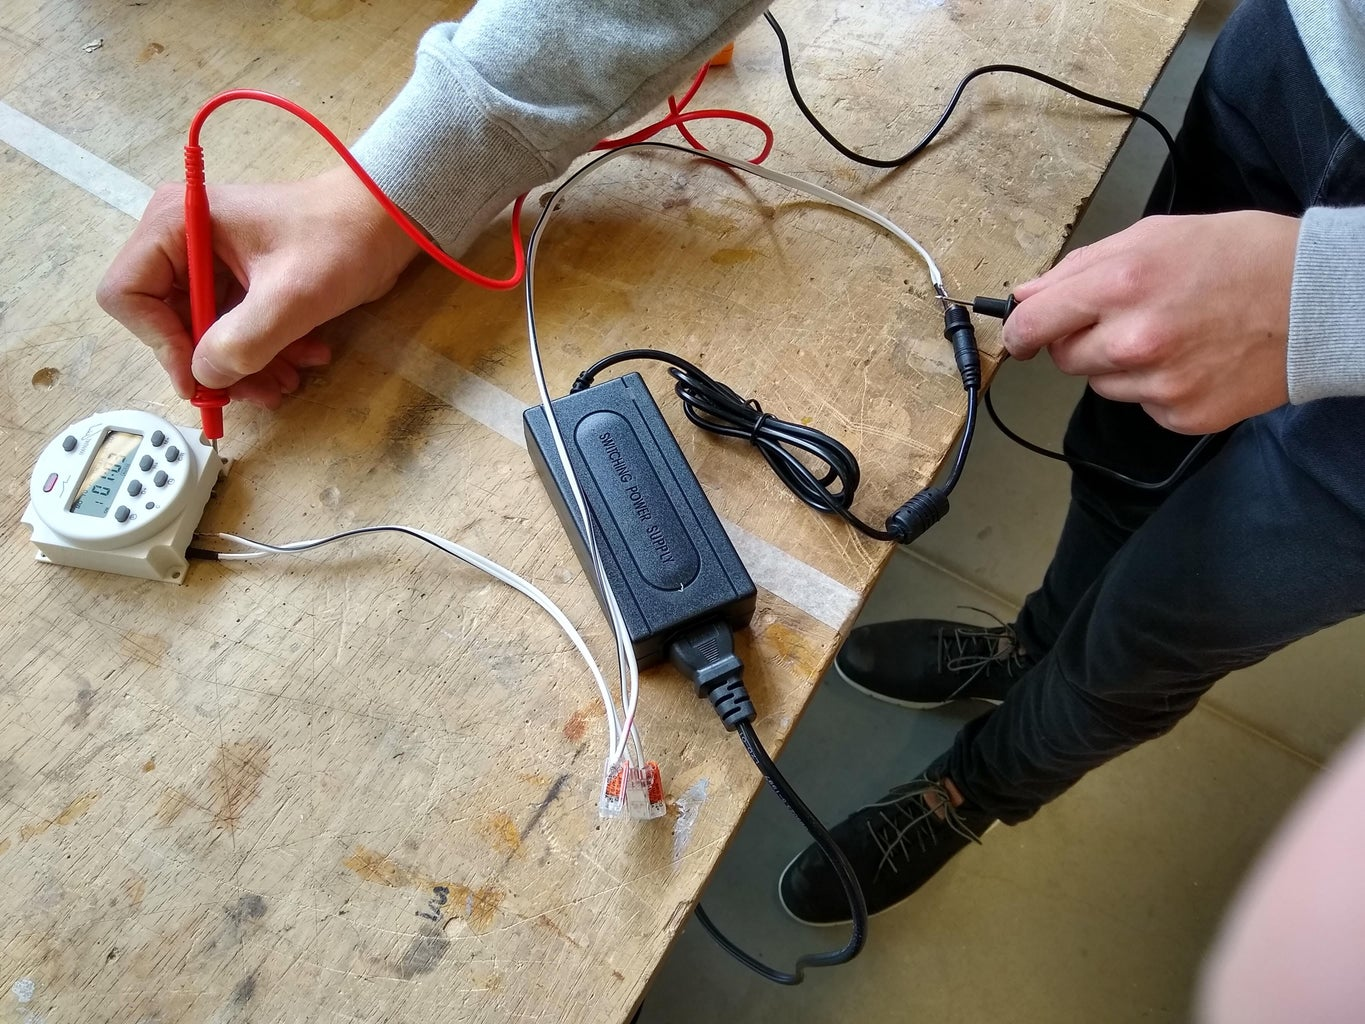 Step C3: Test the Circuit